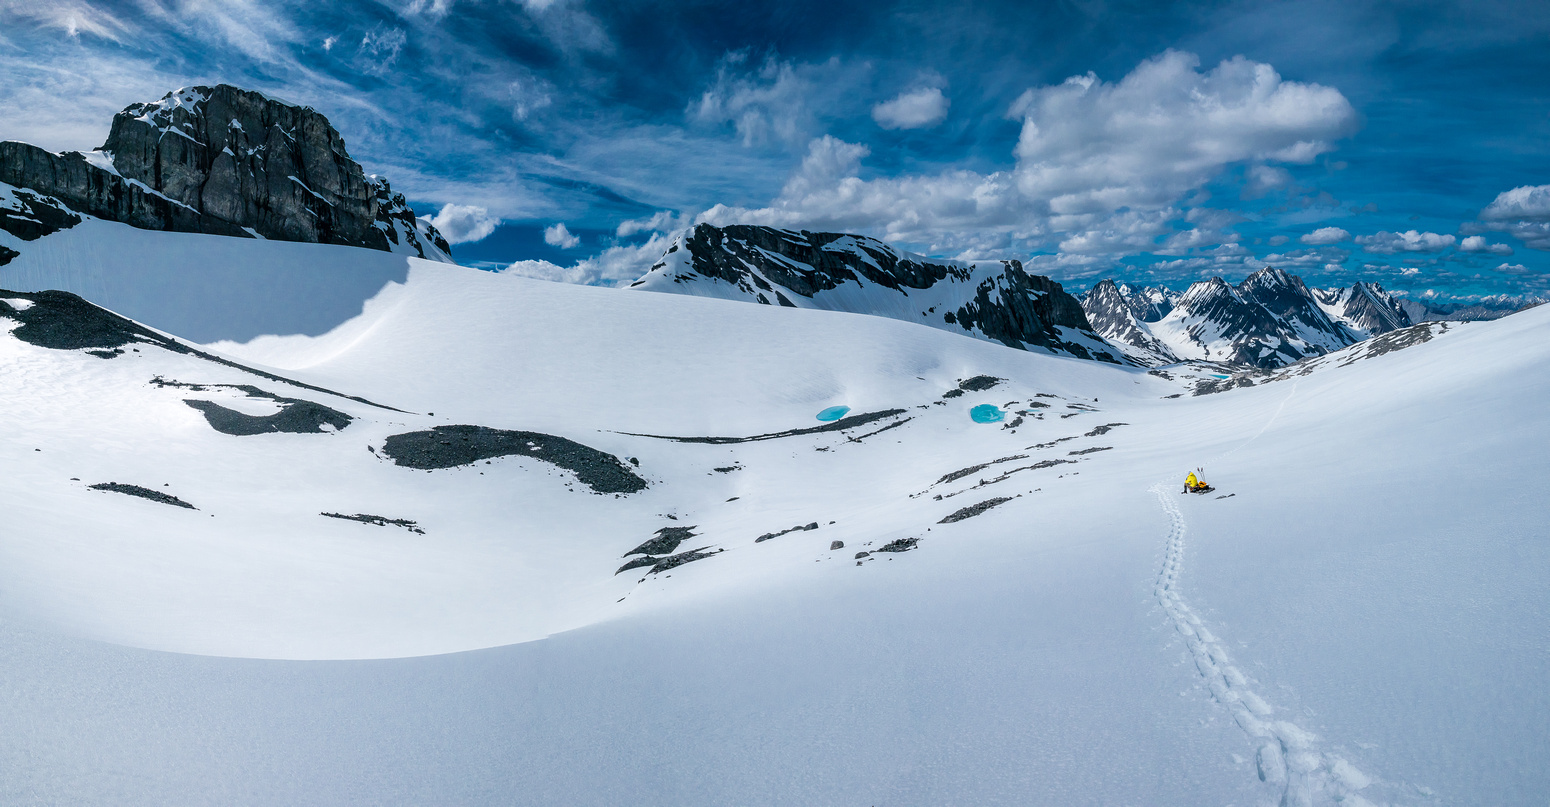 Looking back down the Mangin Glacier. See? We do take breaks. Occasionally. This was a darn nice spot too.